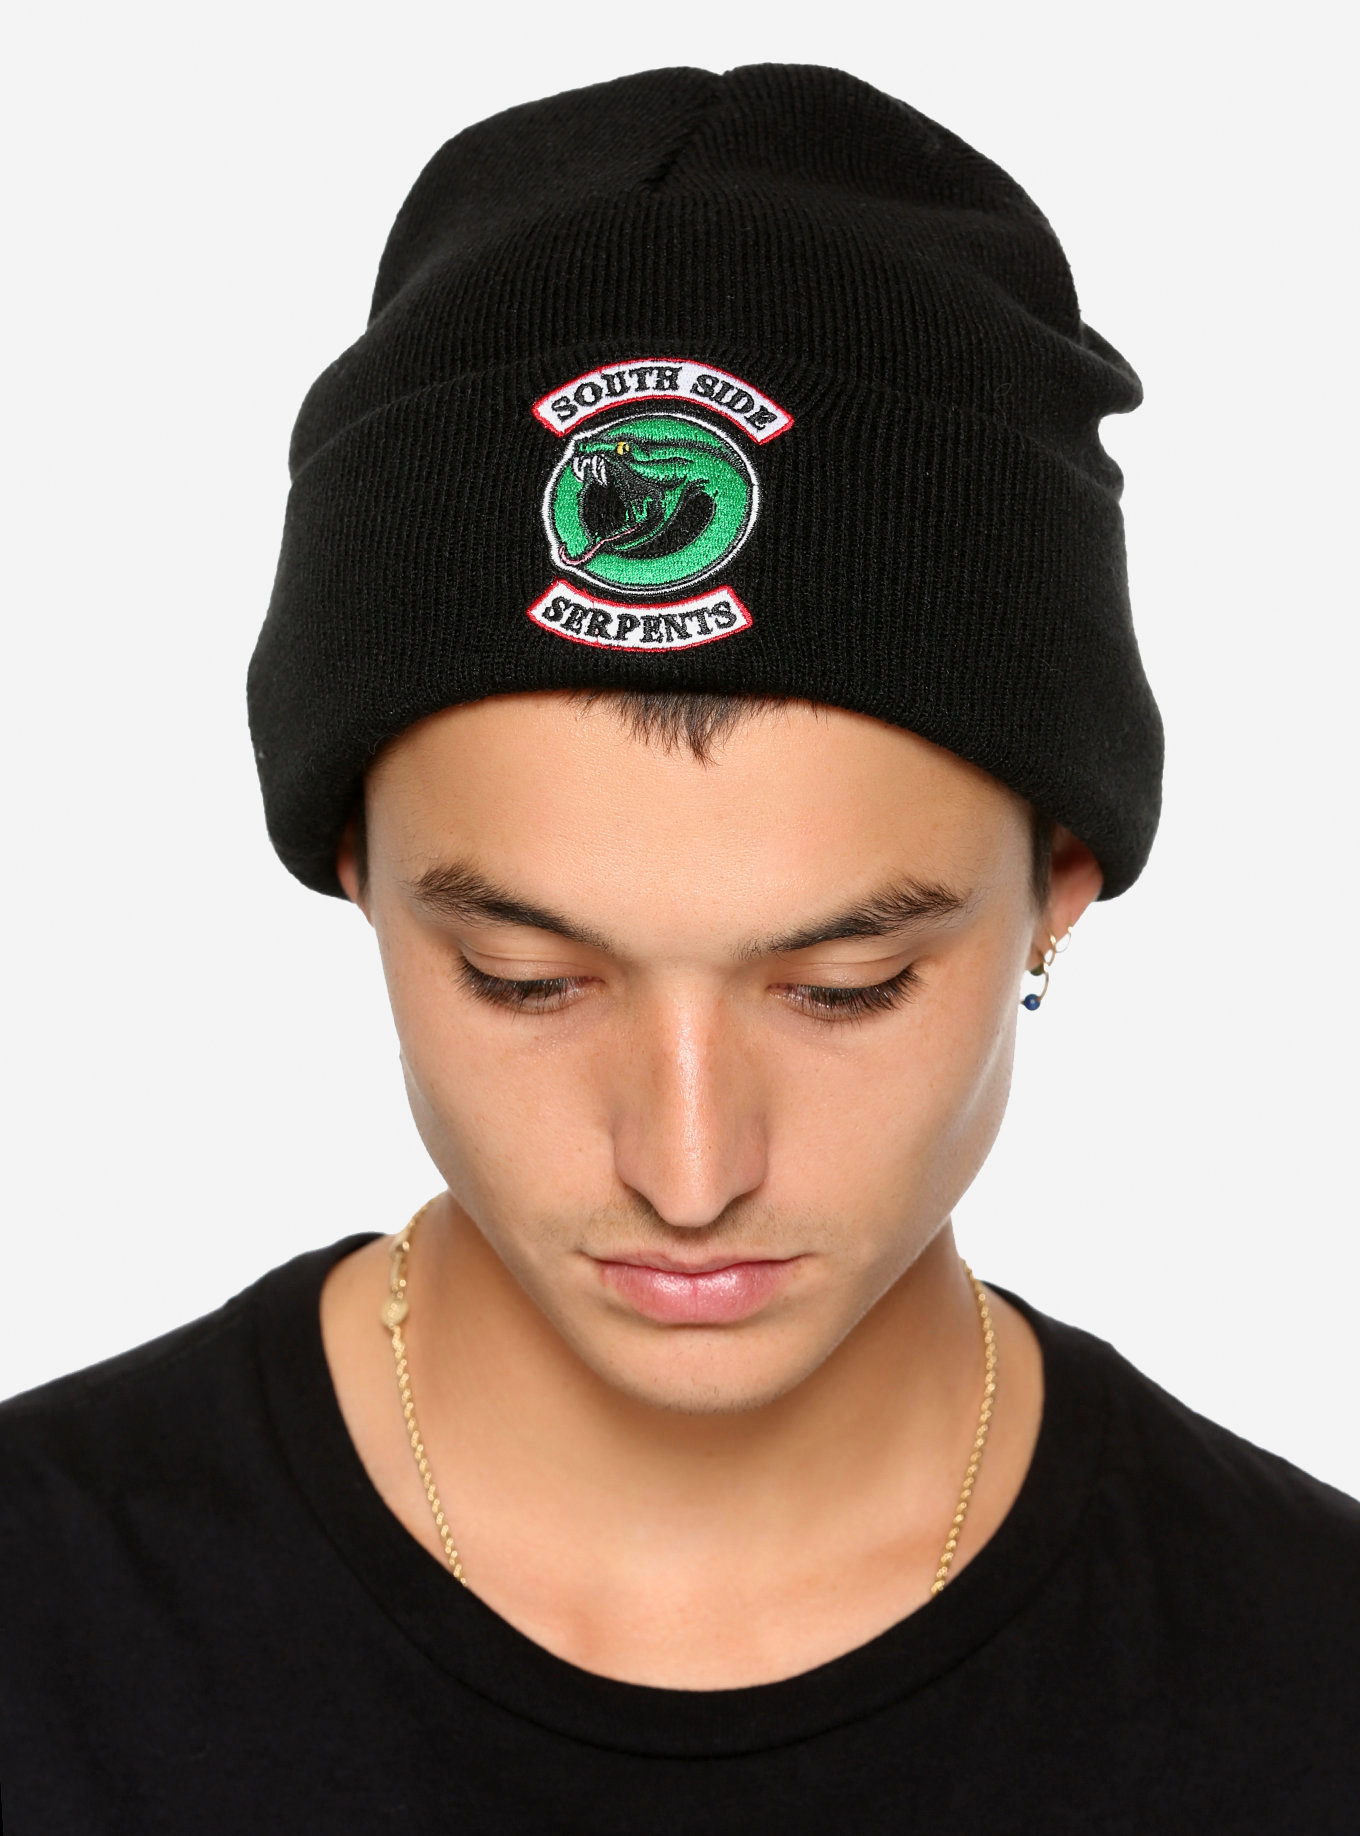 b89559abb1a Details about New Genuine Licensed Riverdale Southside Serpents Watchman  Knit Beanie Hat